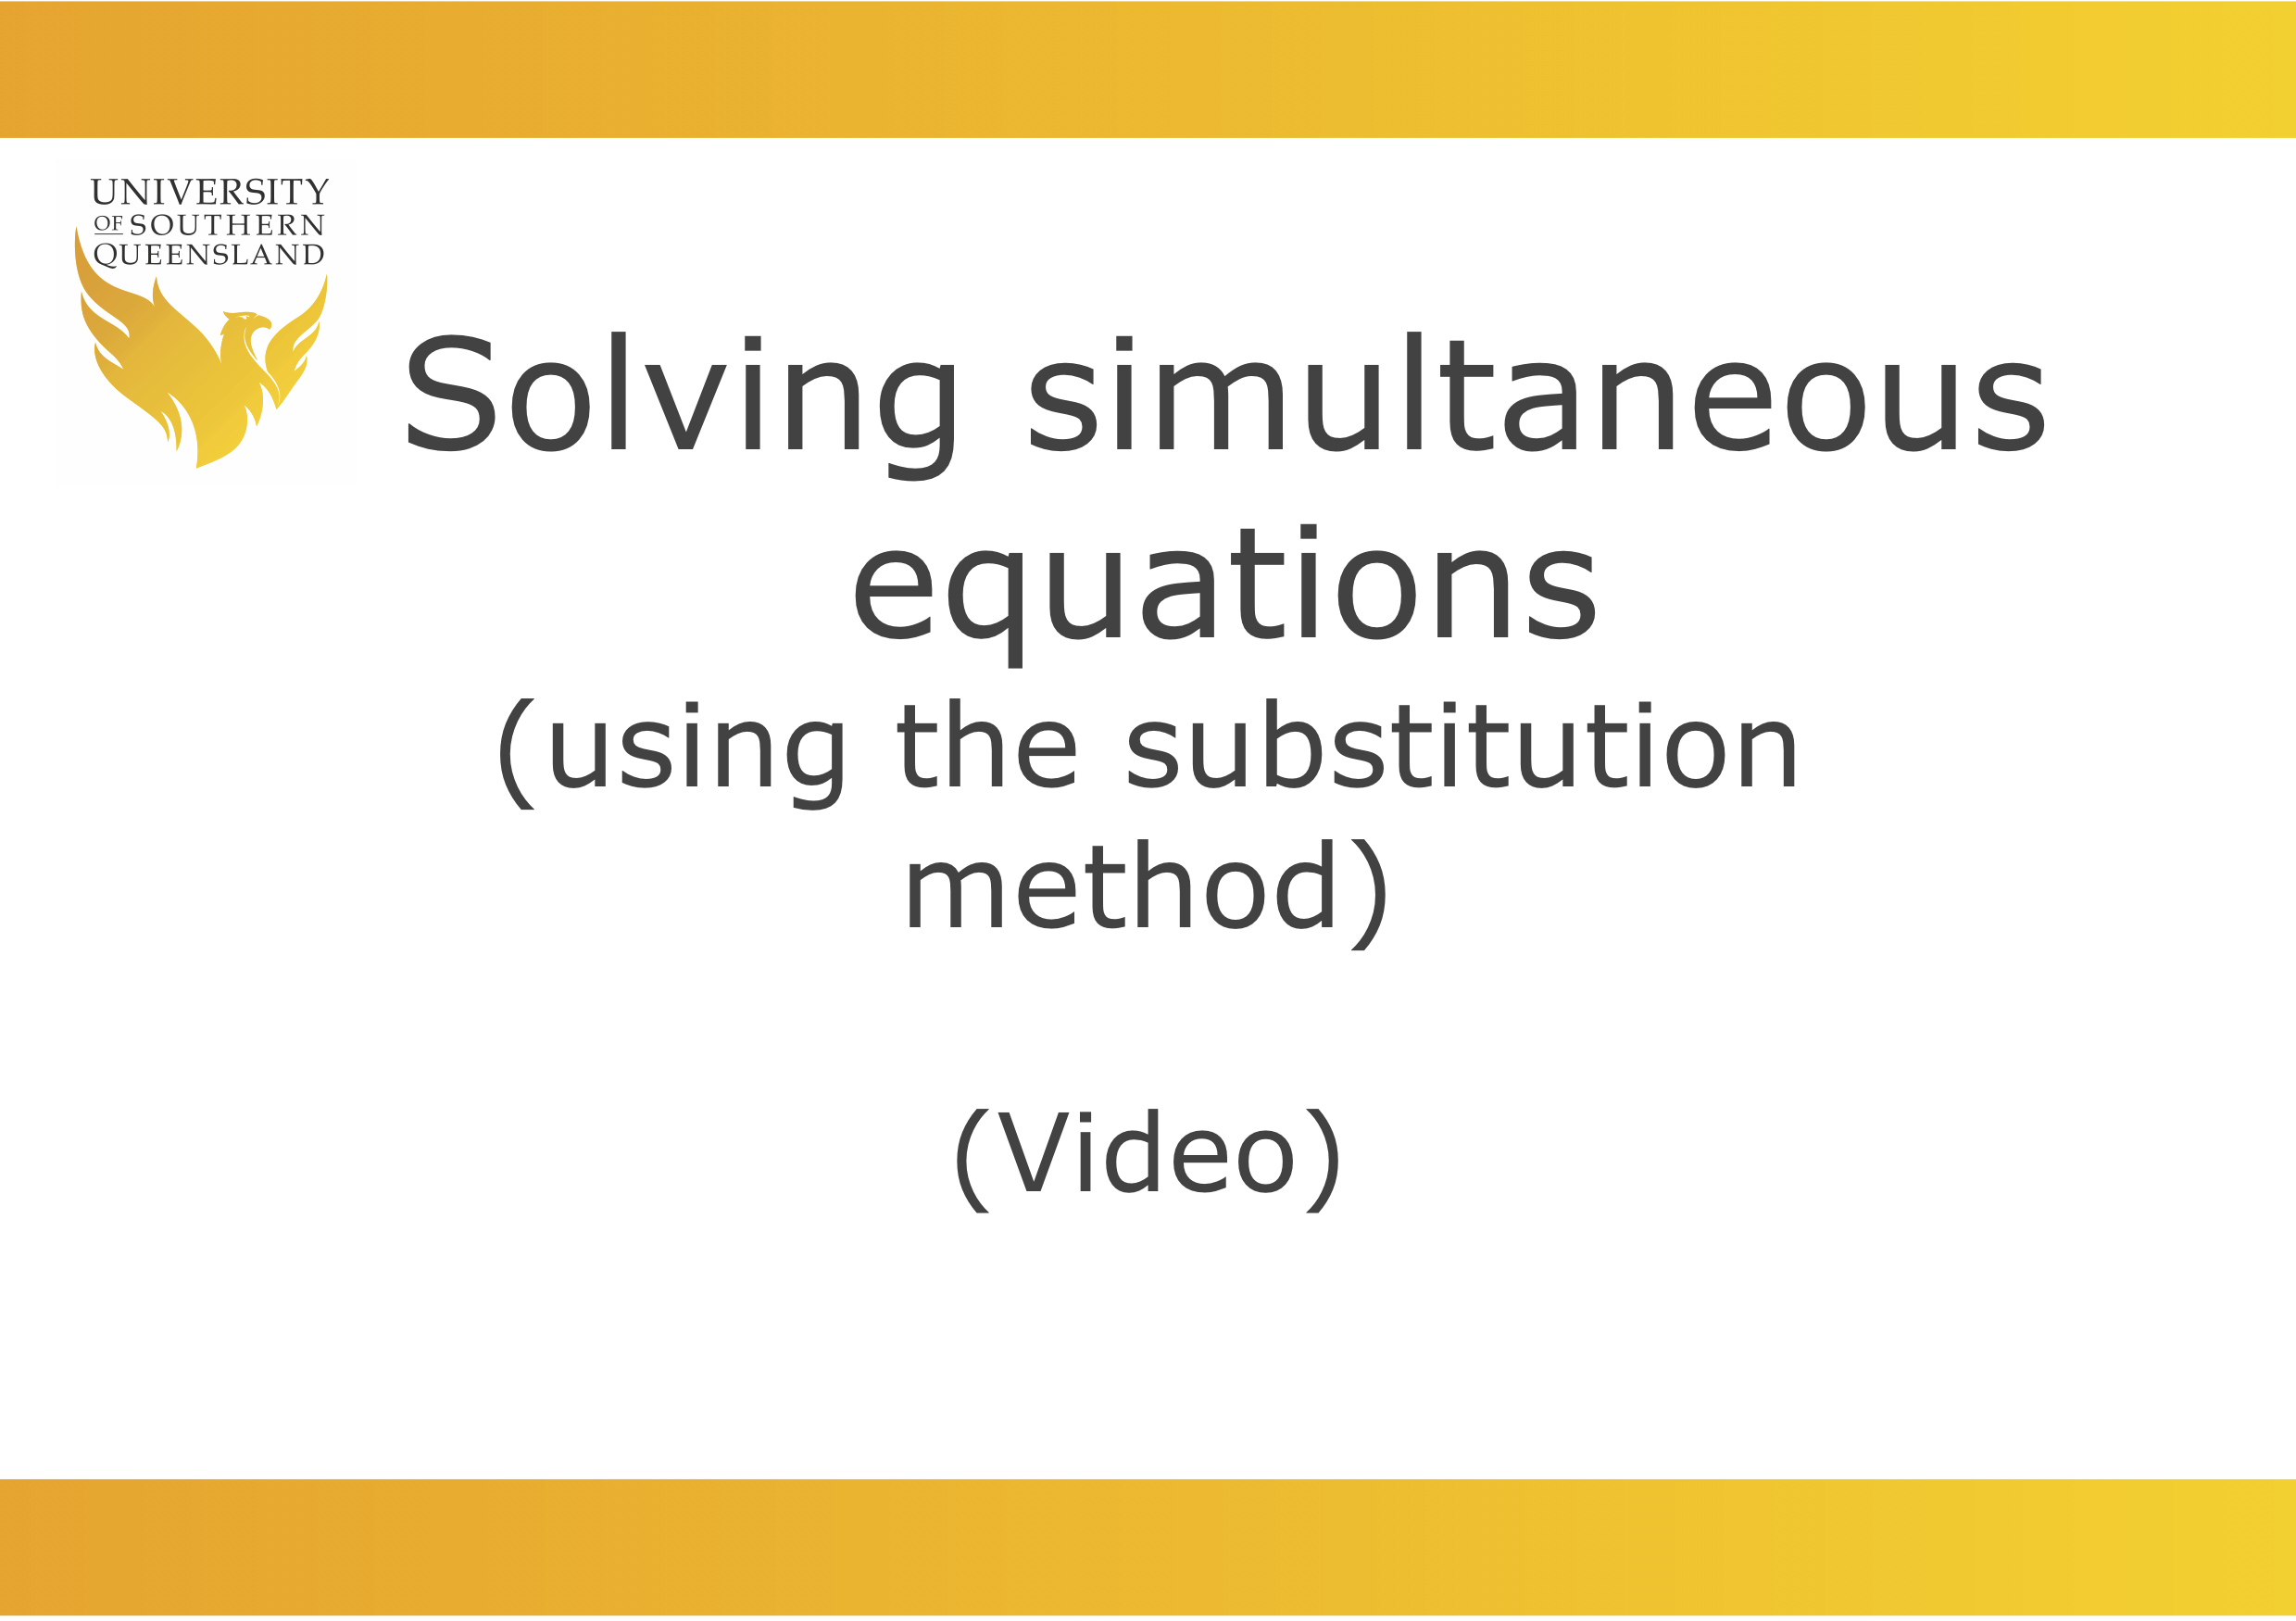 Solving simultaneous equations (using the substitution method)